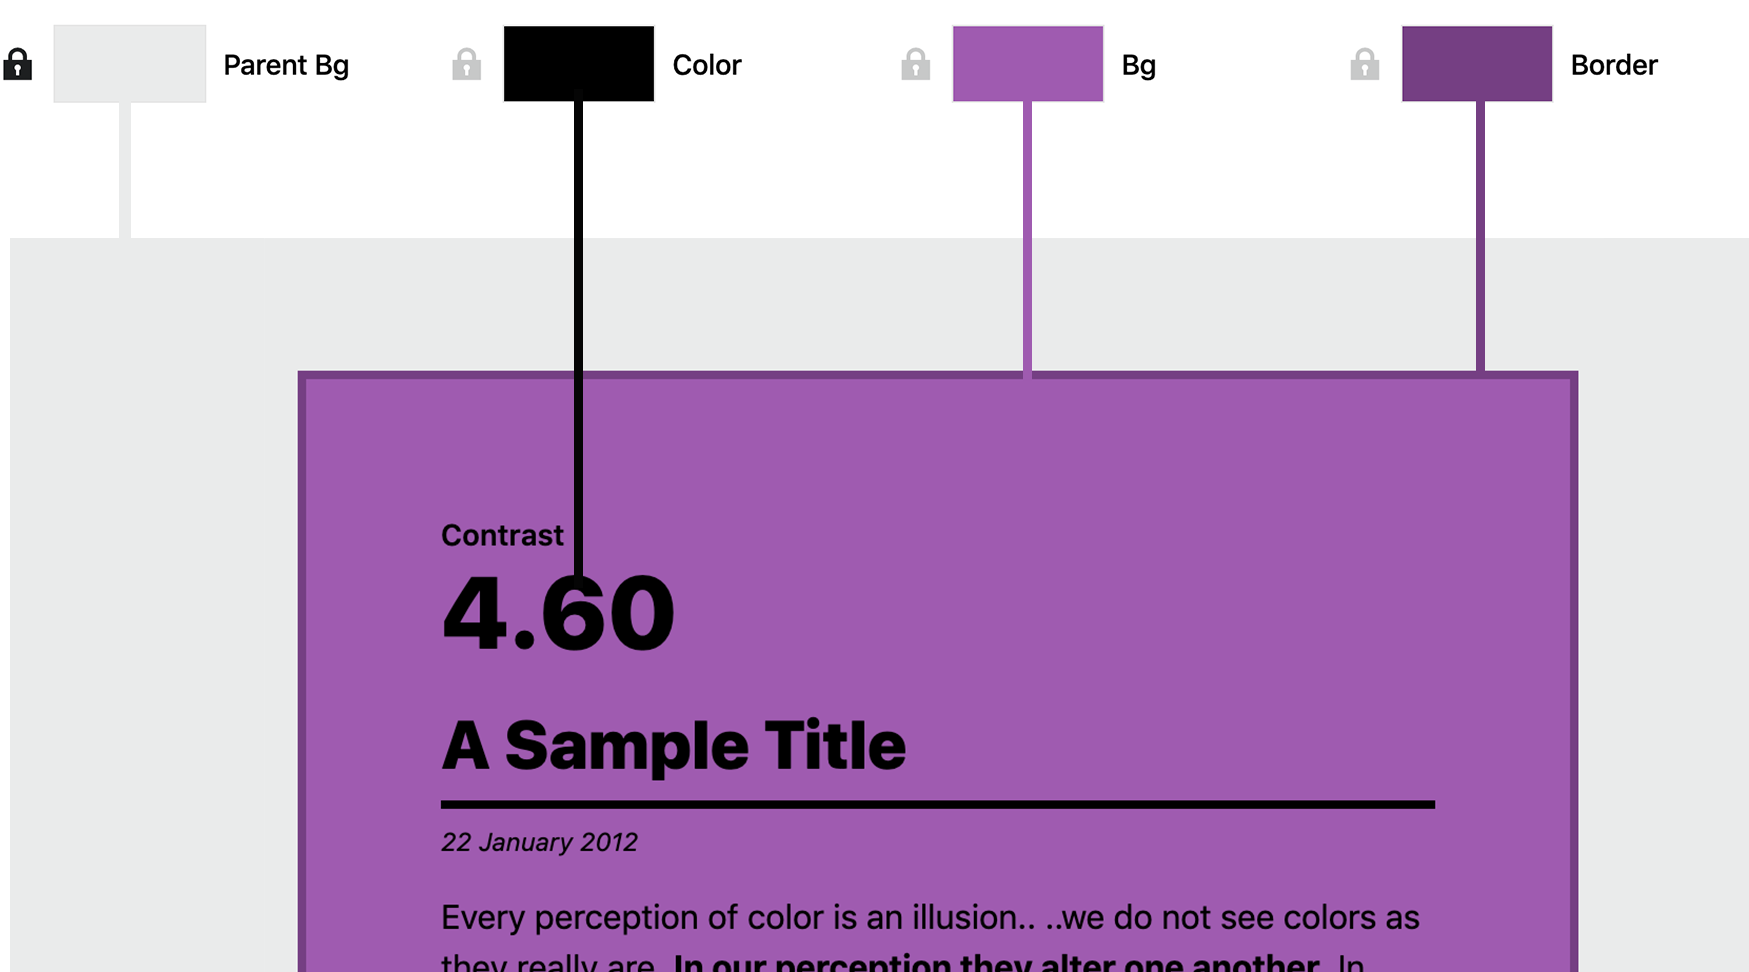 How selected colors from the palette map to the preview panel